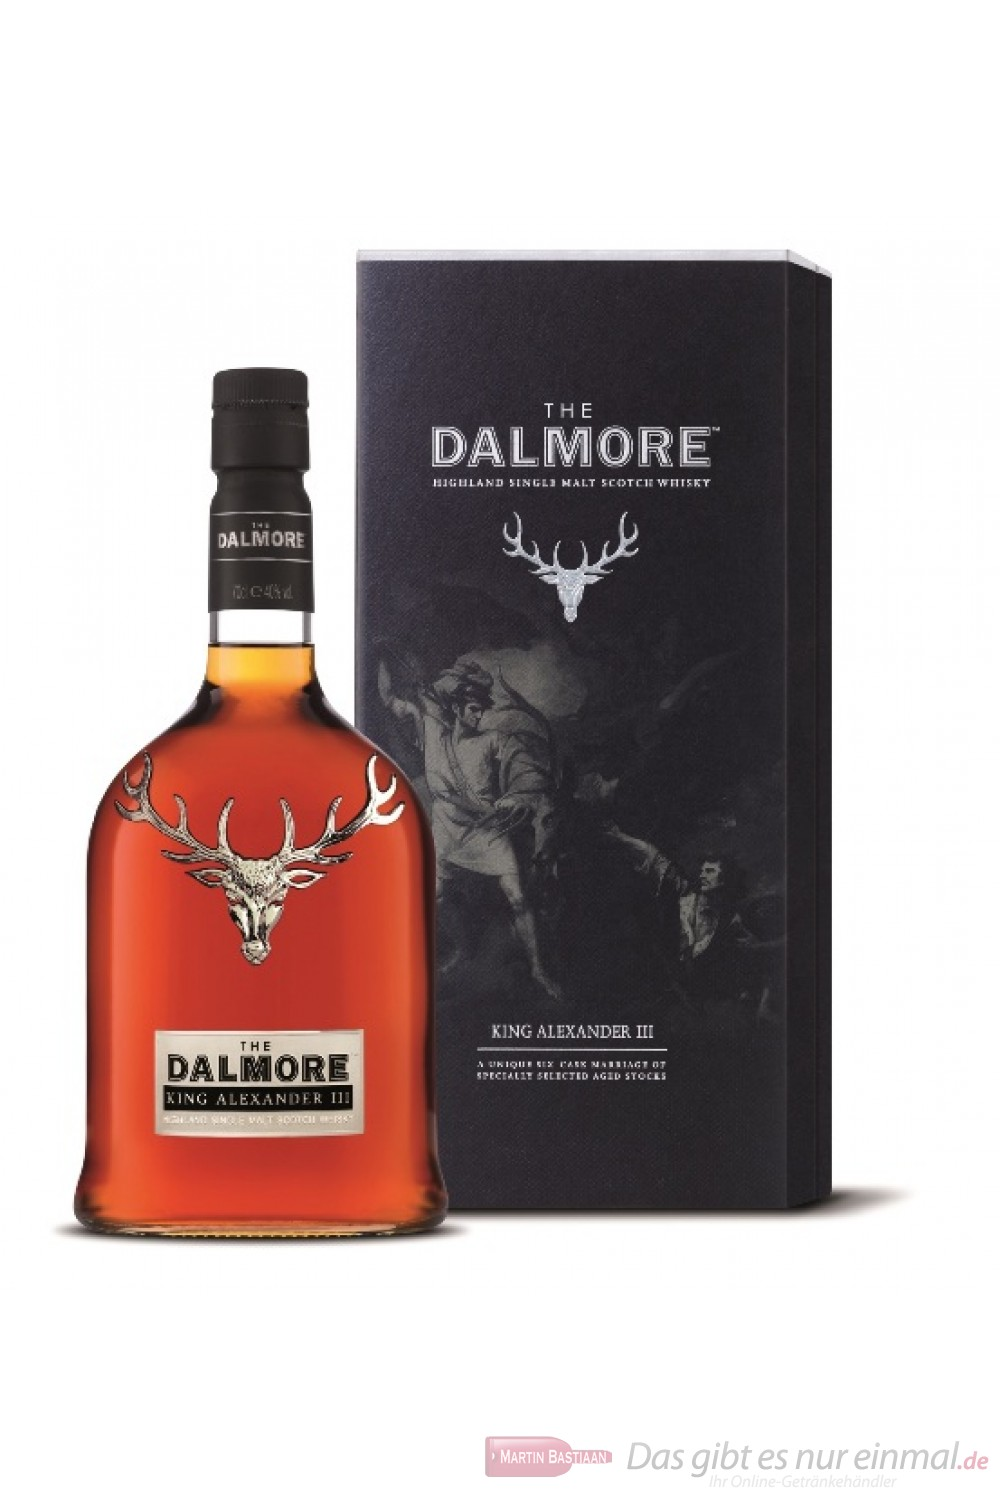 The Dalmore King Alexander